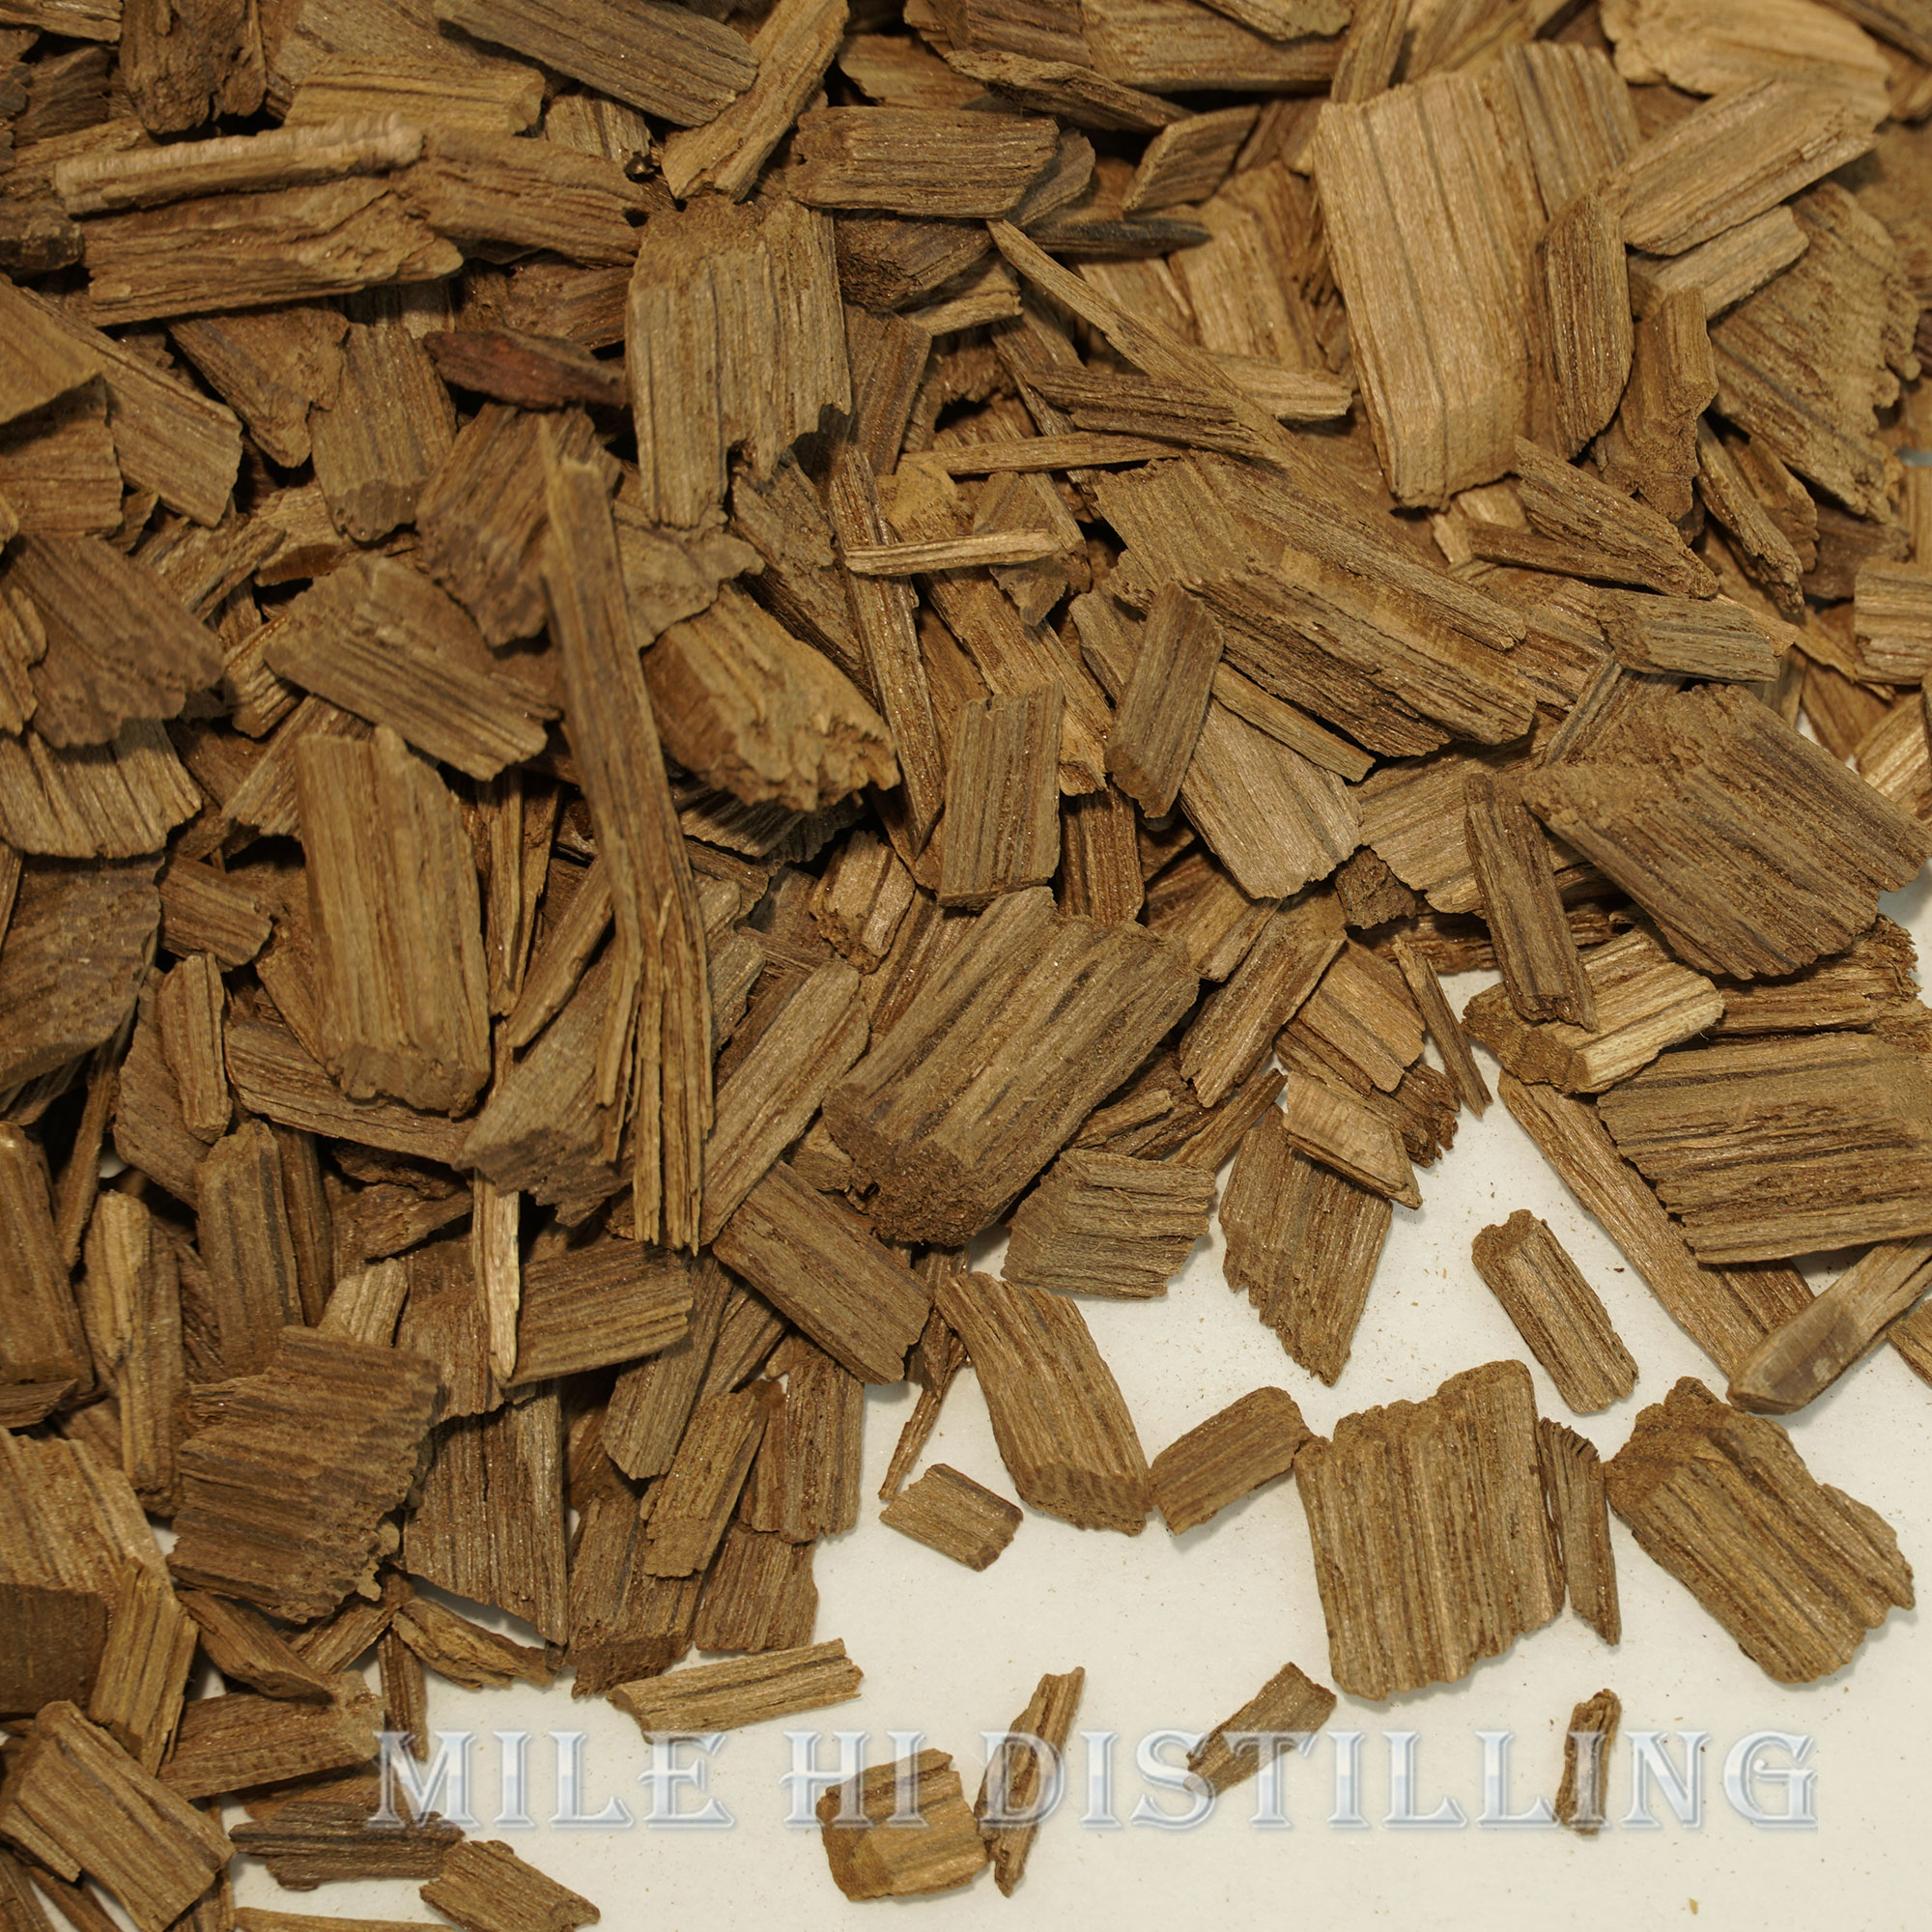 Medium Toasted Oak Chips Distilling Supplies 2